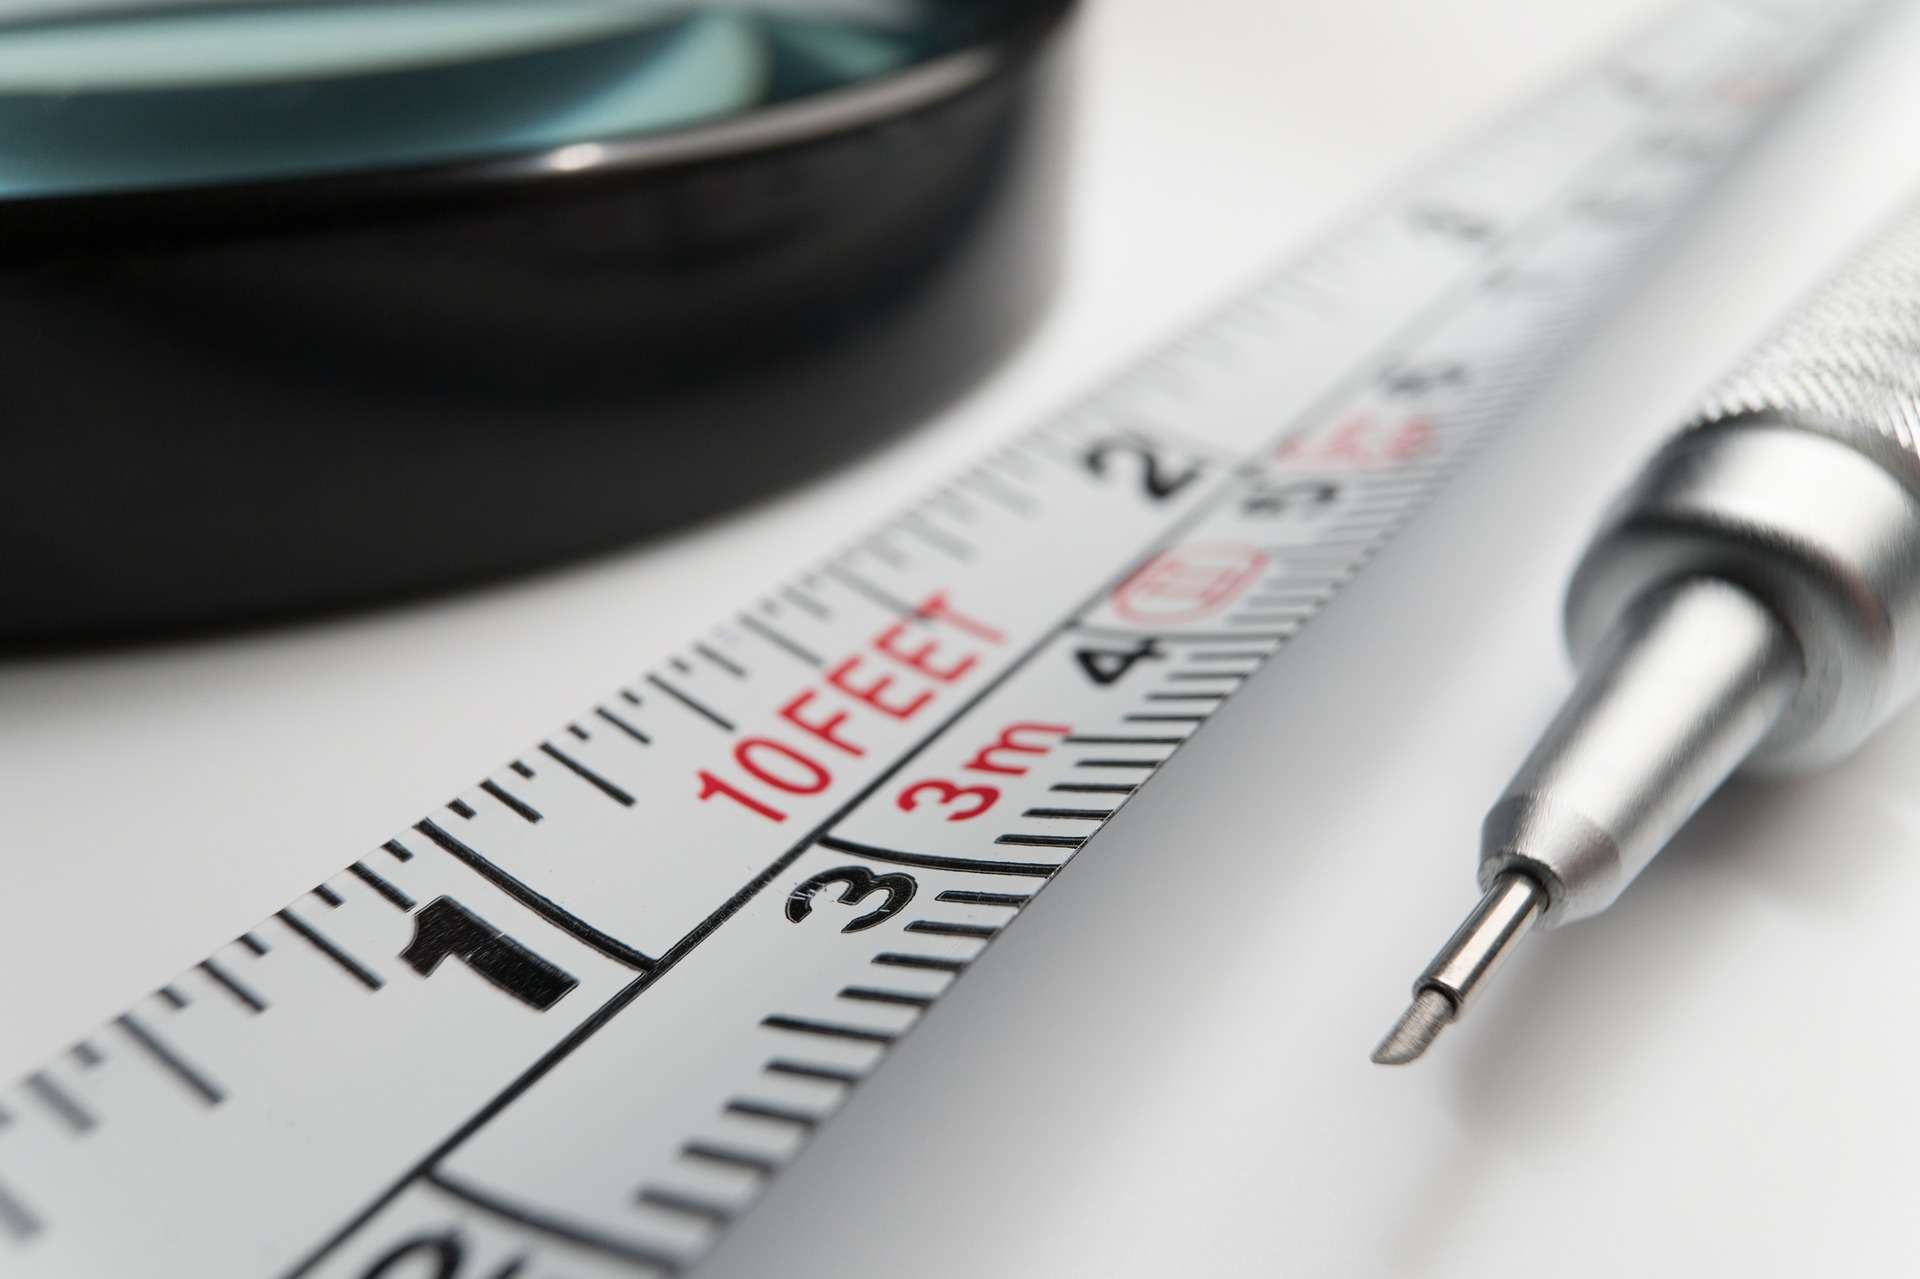 measuring and planning tools